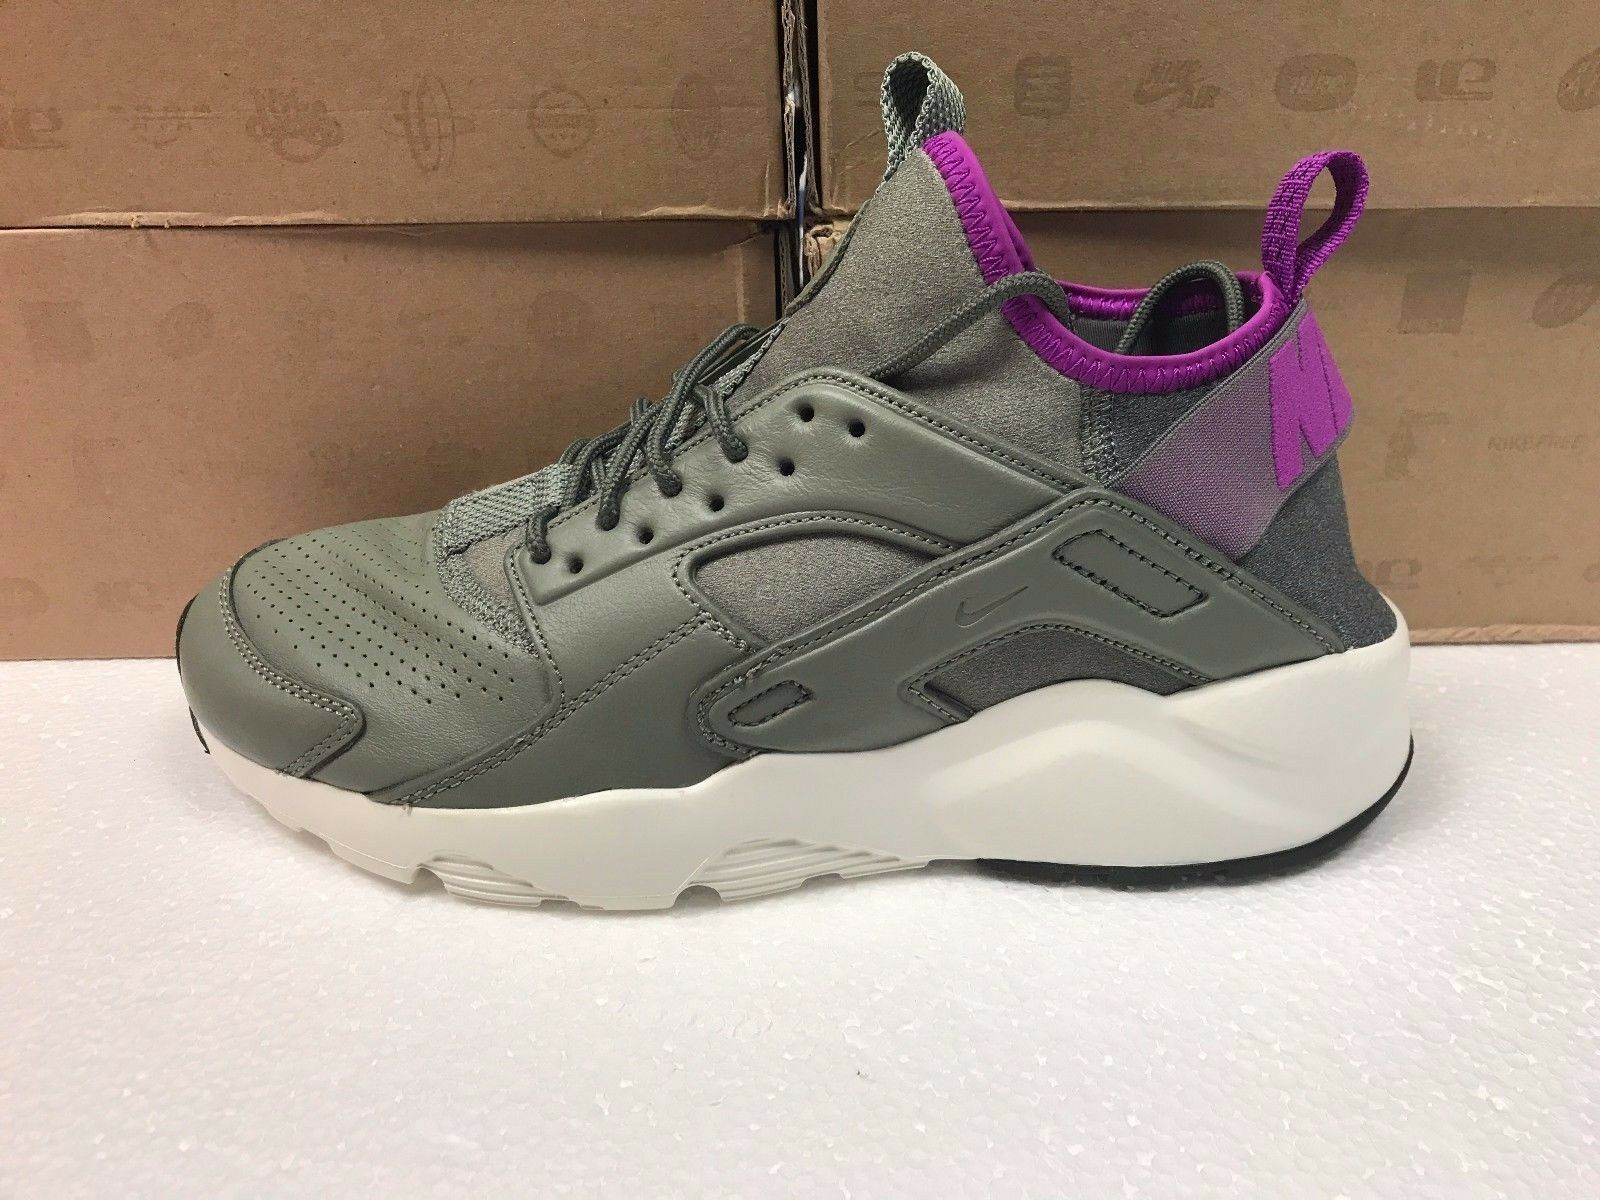 NEW MENS NIKE AIR HUARACHE RUN ULTRA SE SNEAKERS-SHOES RUNNING-875841 003-SIZE 9